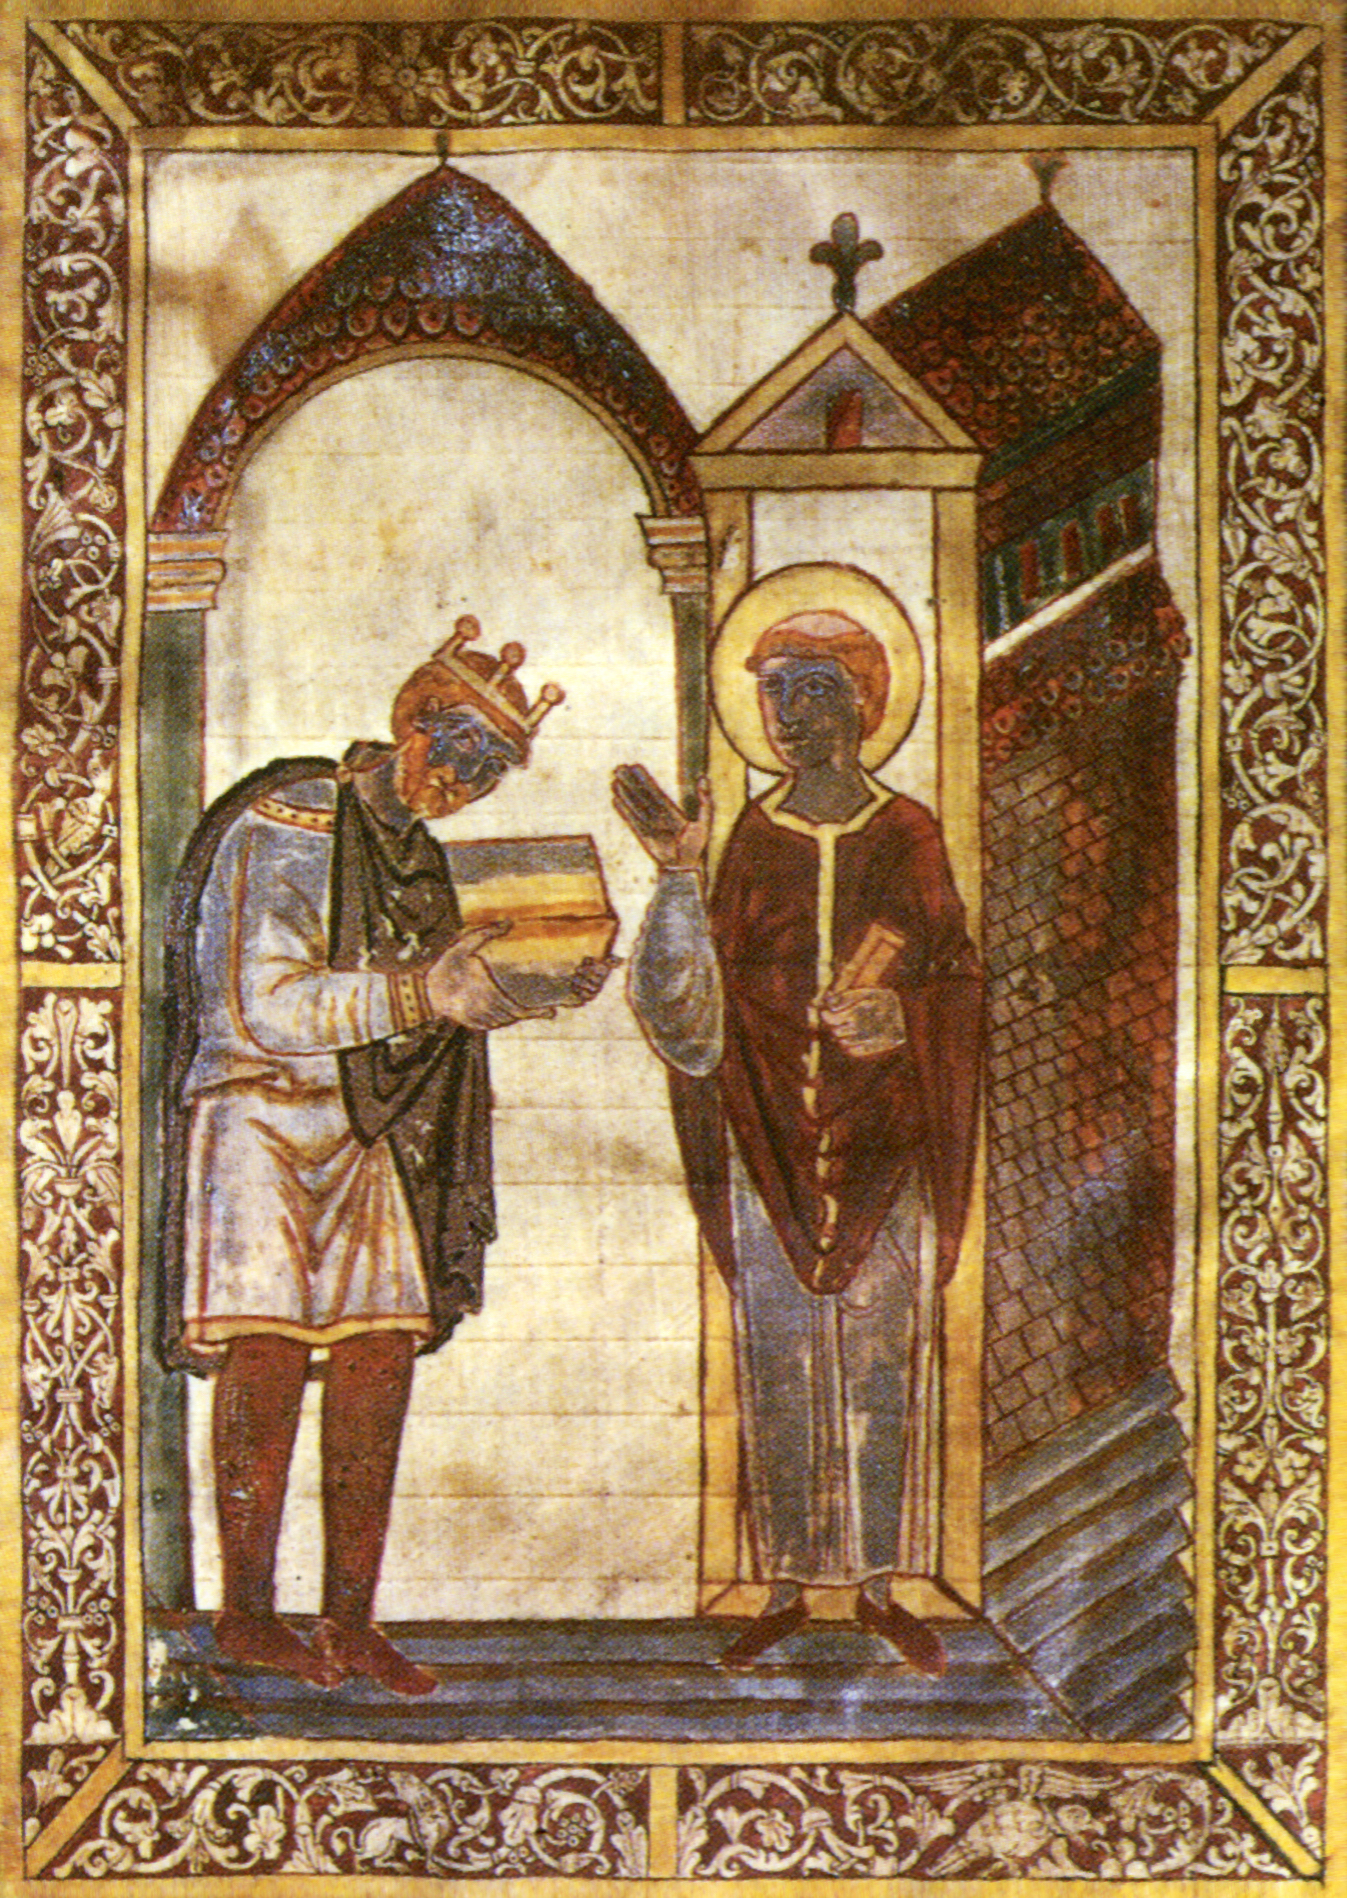 https://upload.wikimedia.org/wikipedia/commons/b/bf/Athelstan.jpg